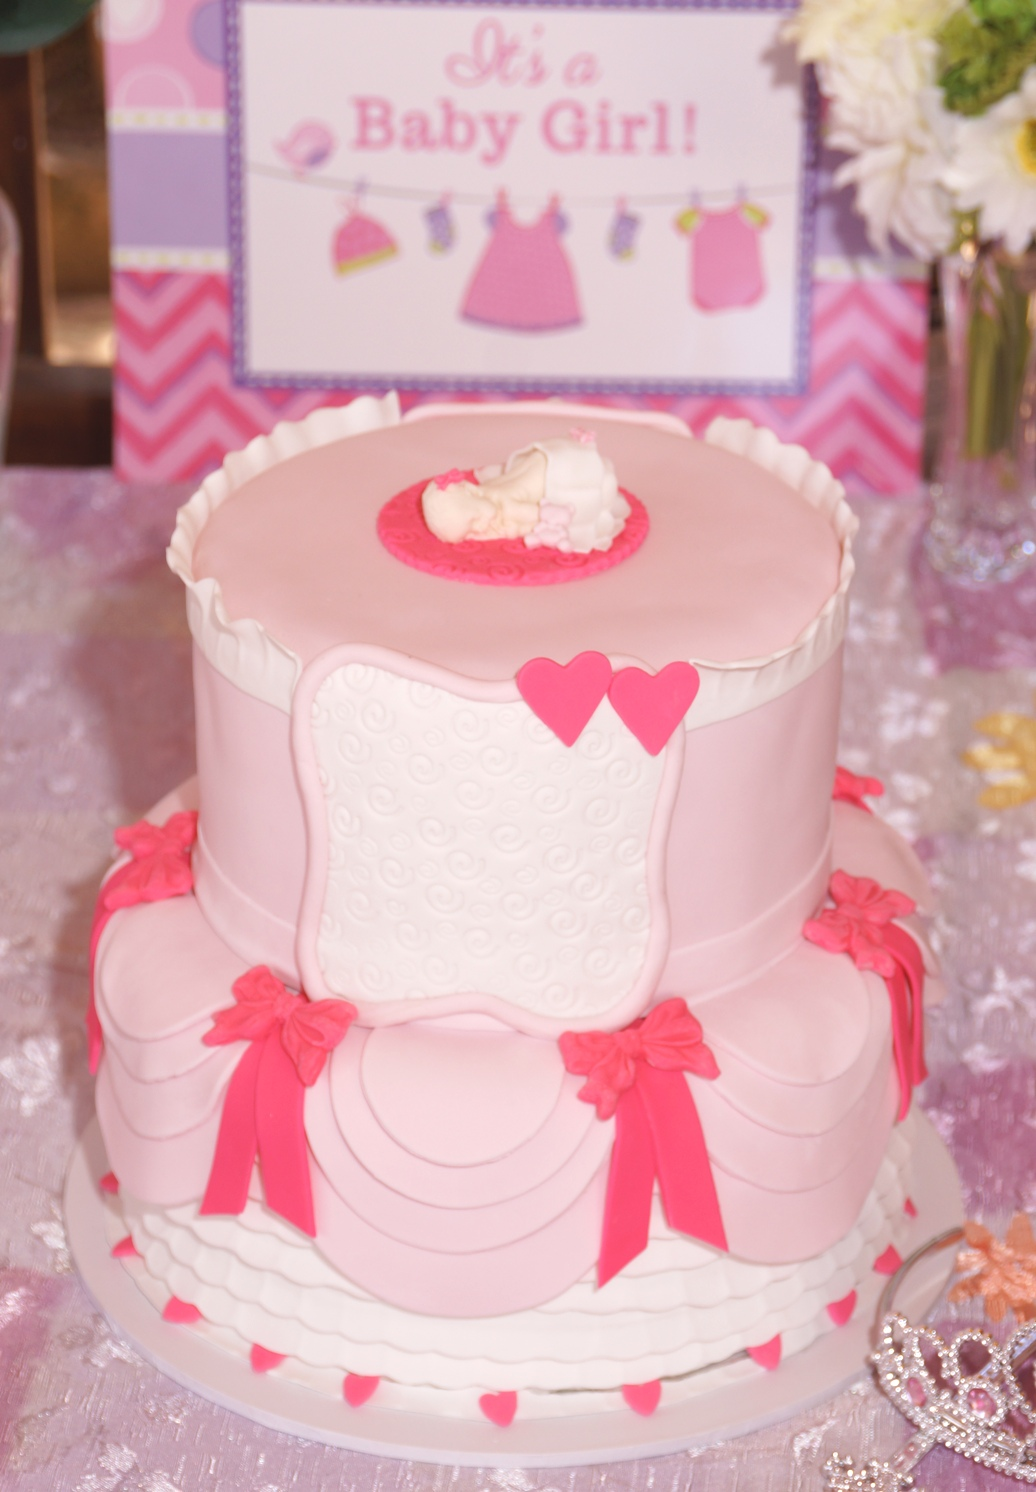 Pink & White Dress Baby Shower Cake with